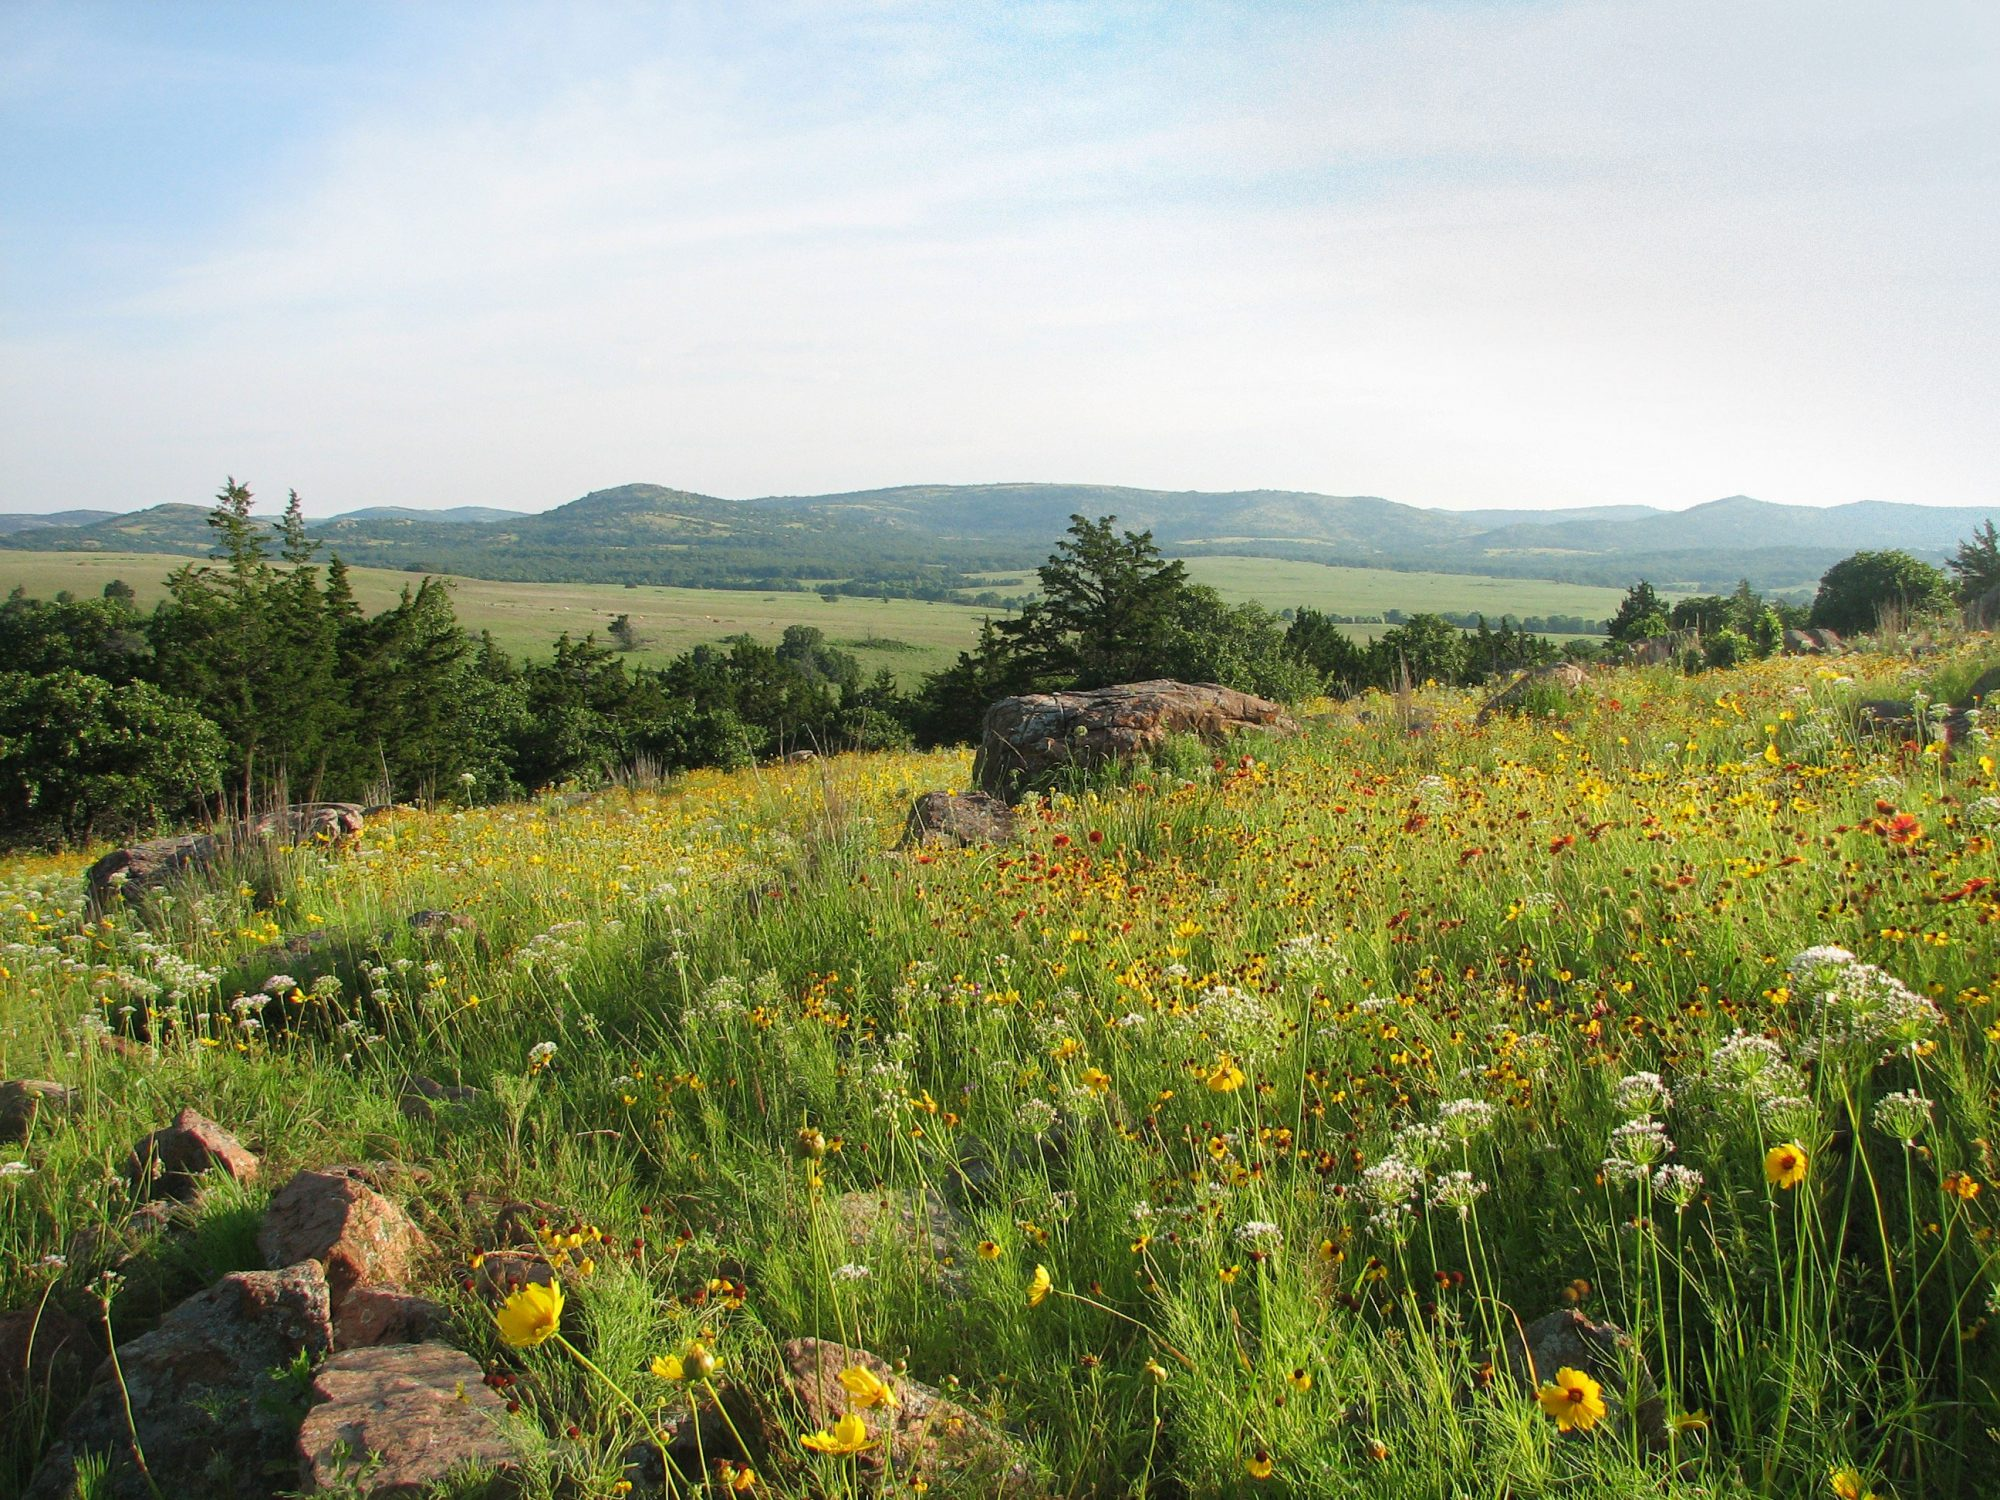 Wichita Mountains Wildlife Refuge in Oklahoma